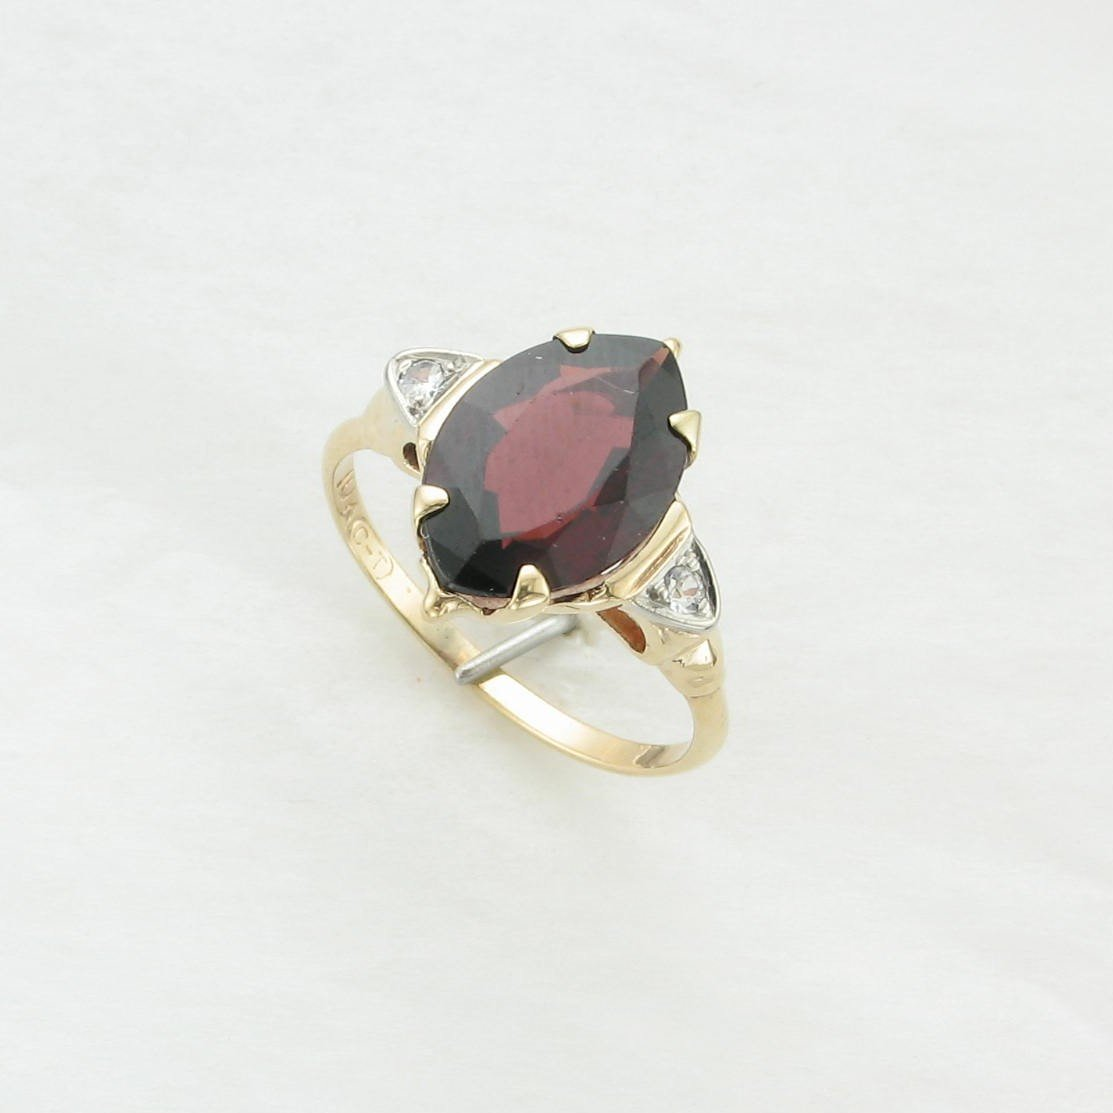 3.08ct Mozambique Garnet Ring set in 10K Yellow Gold